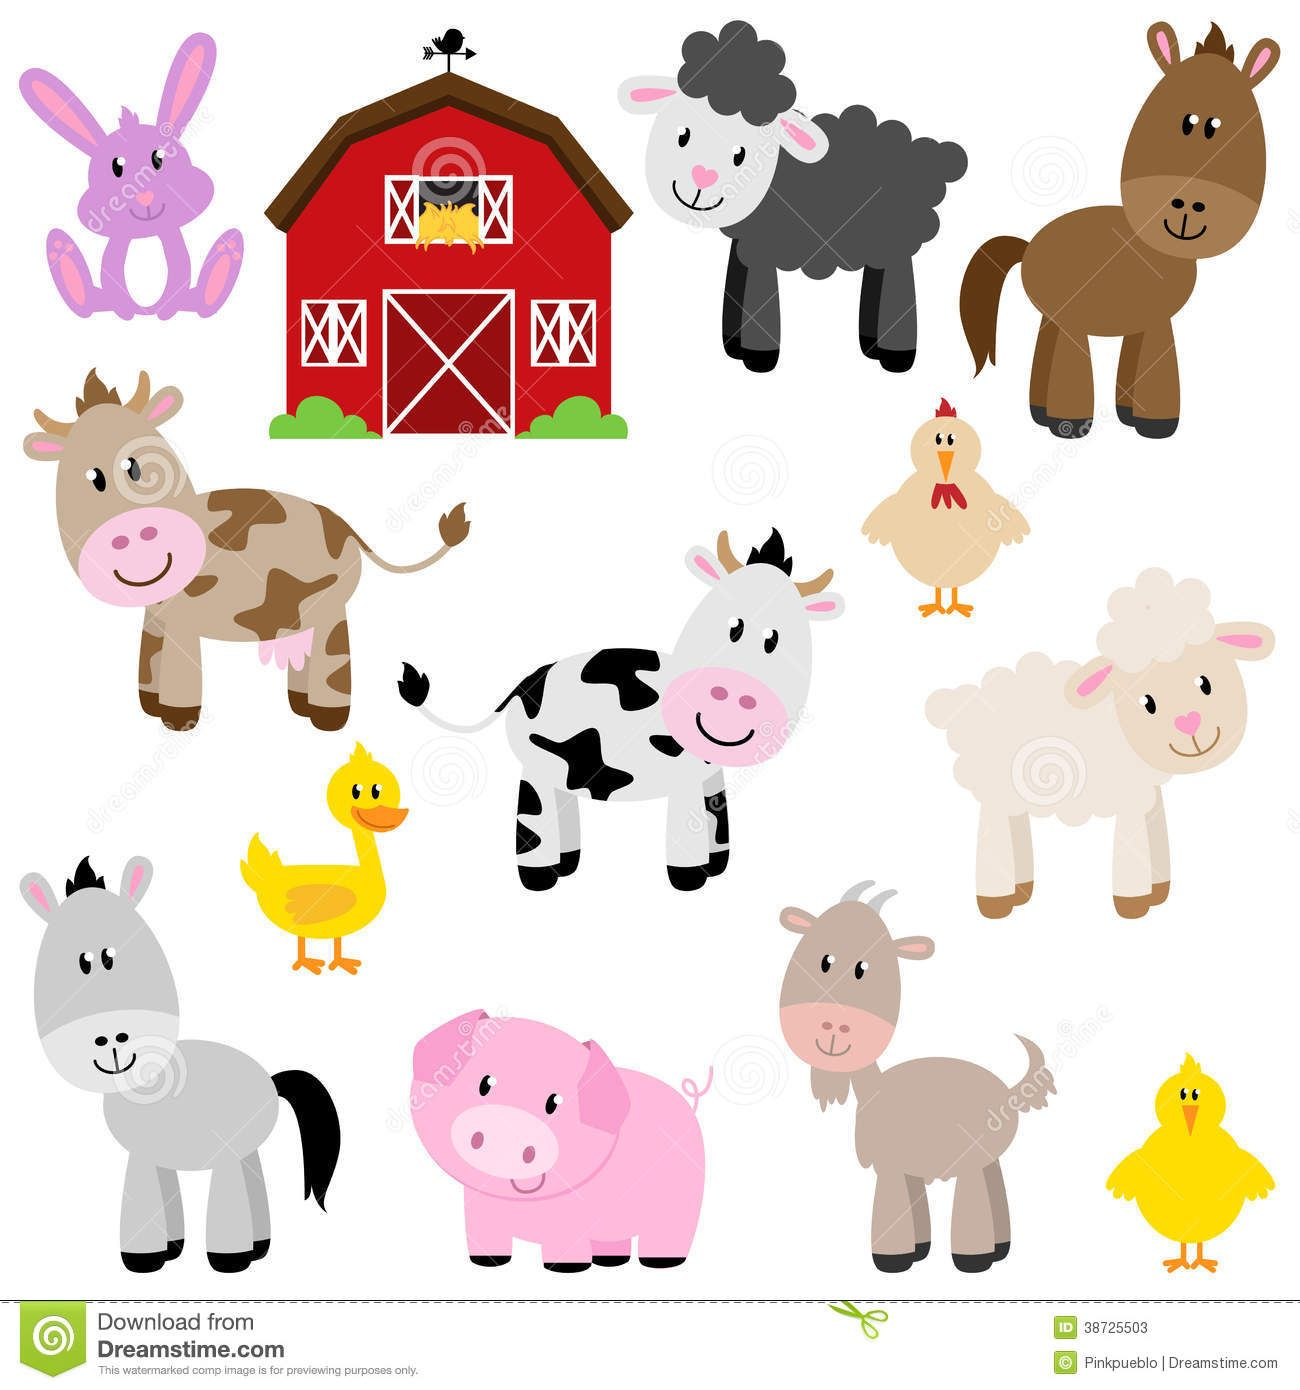 Vector Collection Of Cute Cartoon Farm Animals Download From Over 57 Million High Quality Stock Photos Images Animal Clipart Barnyard Animals Farm Animals